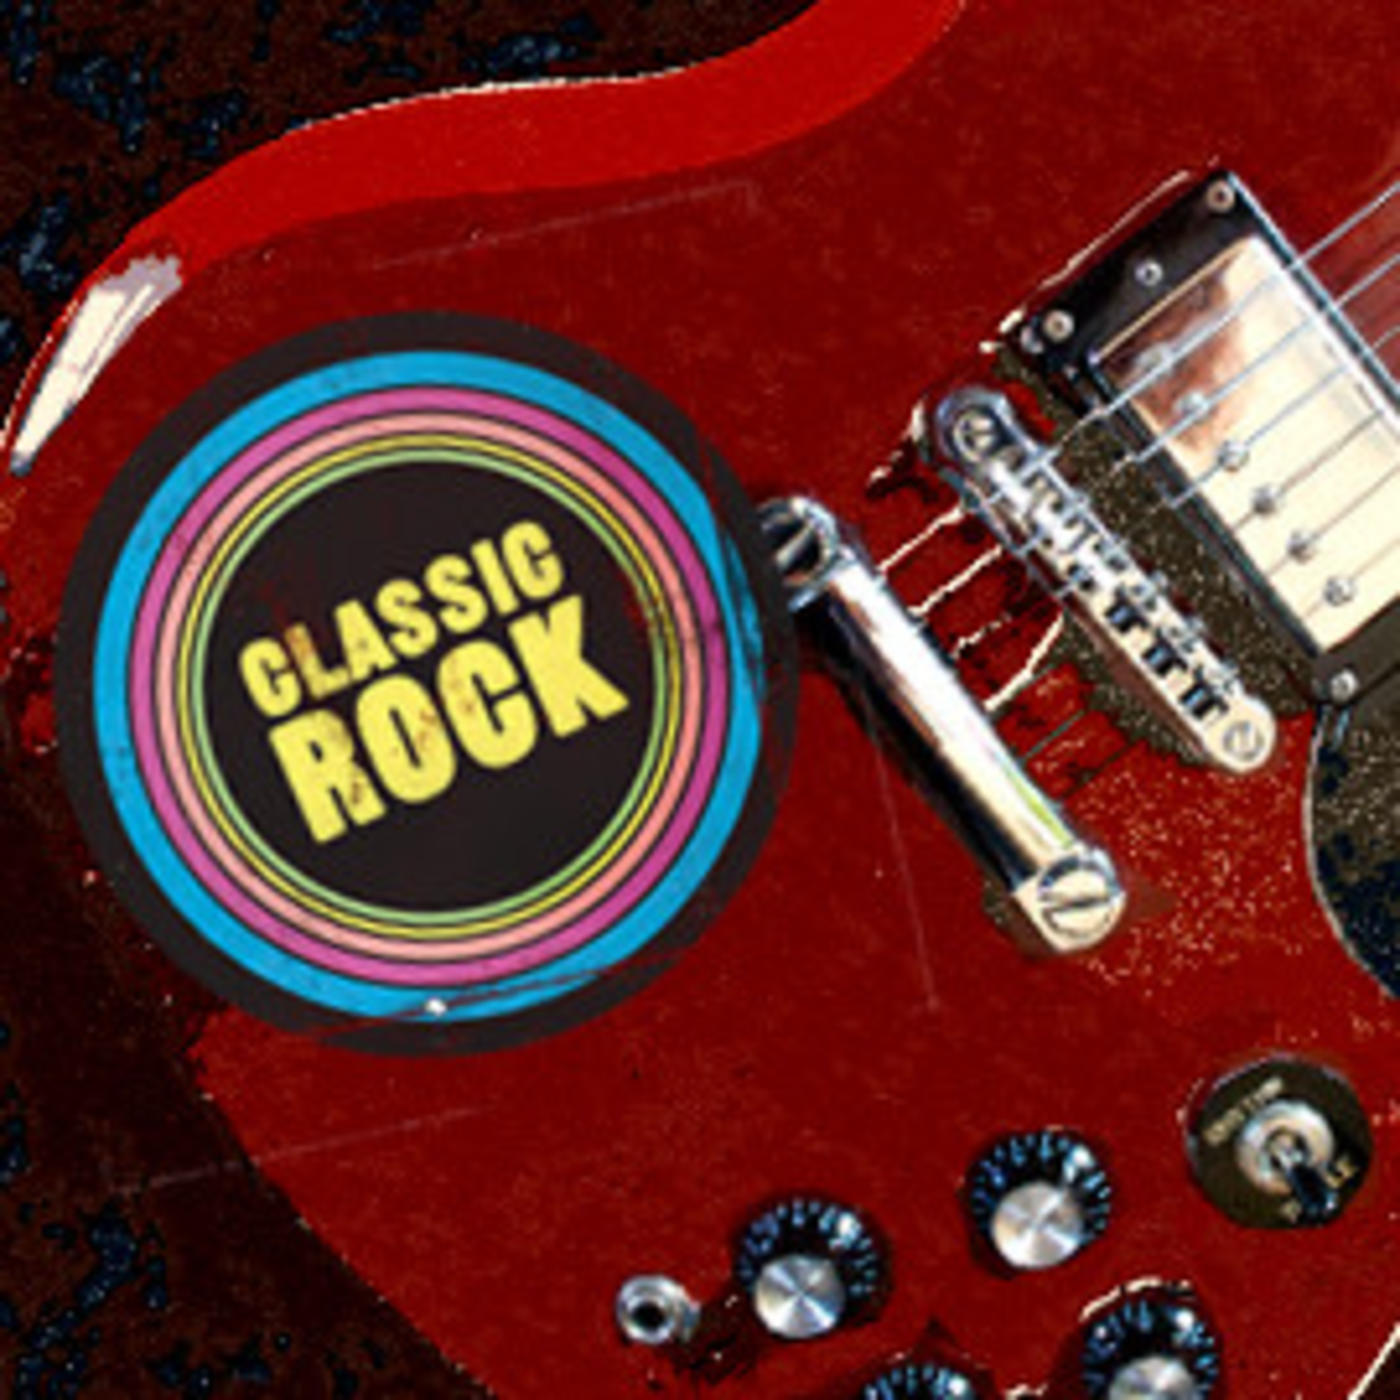 Classic Rock - Led Zeppelin, ZZ Top, Ramones, The Clash, The Who, Van Halen, Neil Young, The Allman Brothers Band, The Rolling Stones, Joe Walsh, The Doors, Dire Straits, XTC